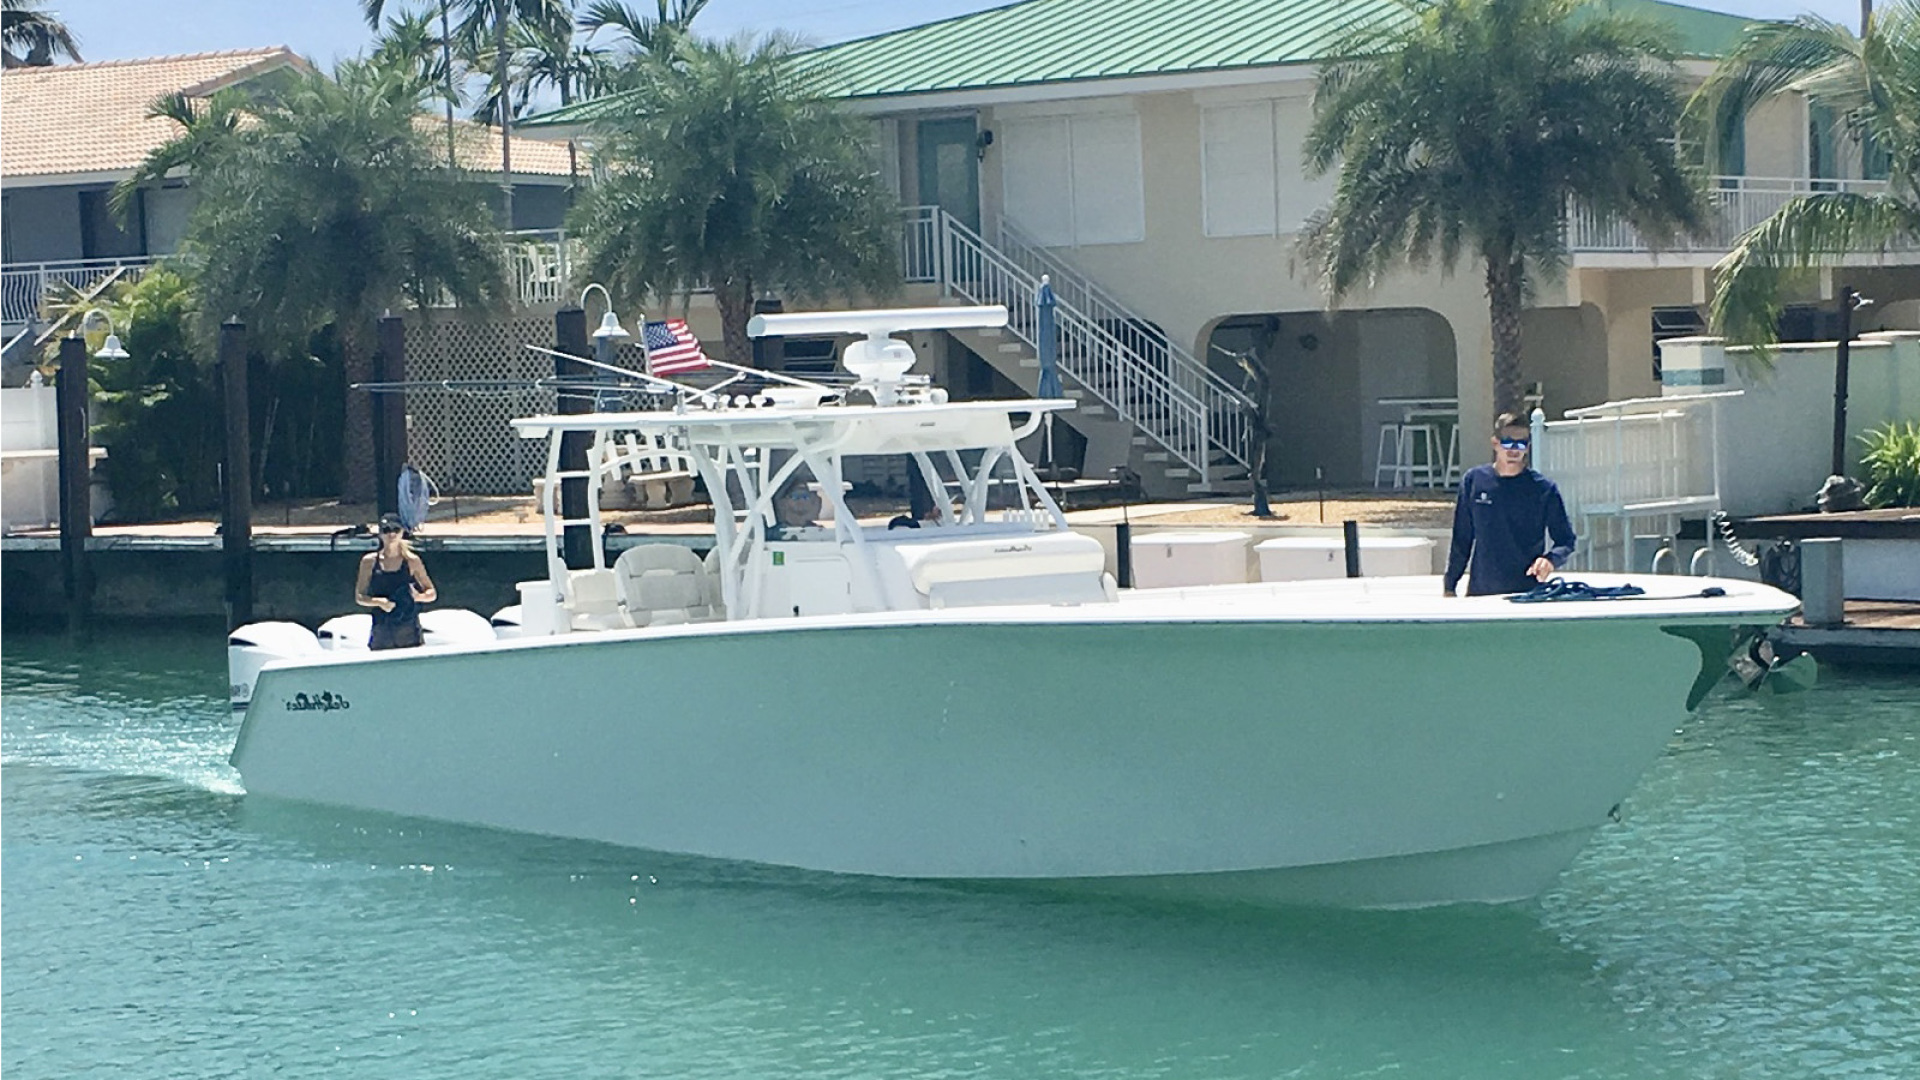 SeaHunter-45 Center Console 2016-No Name Bal Harbour-Florida-United States-2016 Sea Hunter 45 Center Console-1065471   Thumbnail